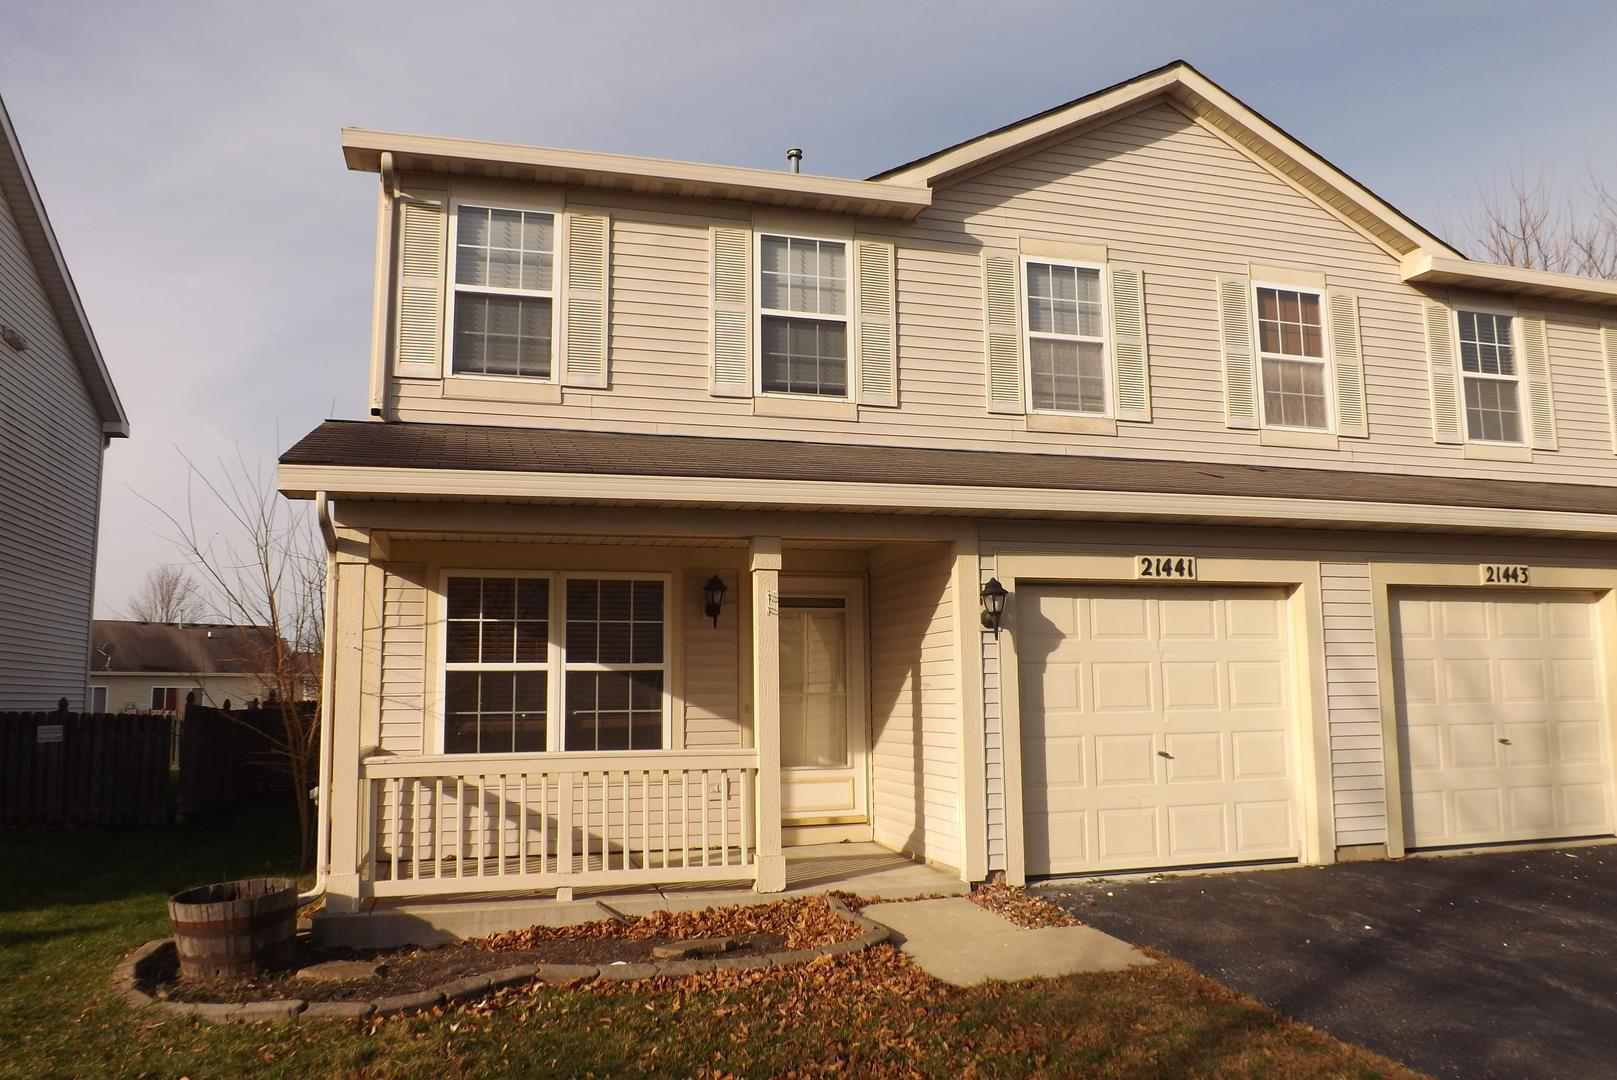 21441 Franklin Circle, Plainfield, IL 60544 - MLS#: 10950053